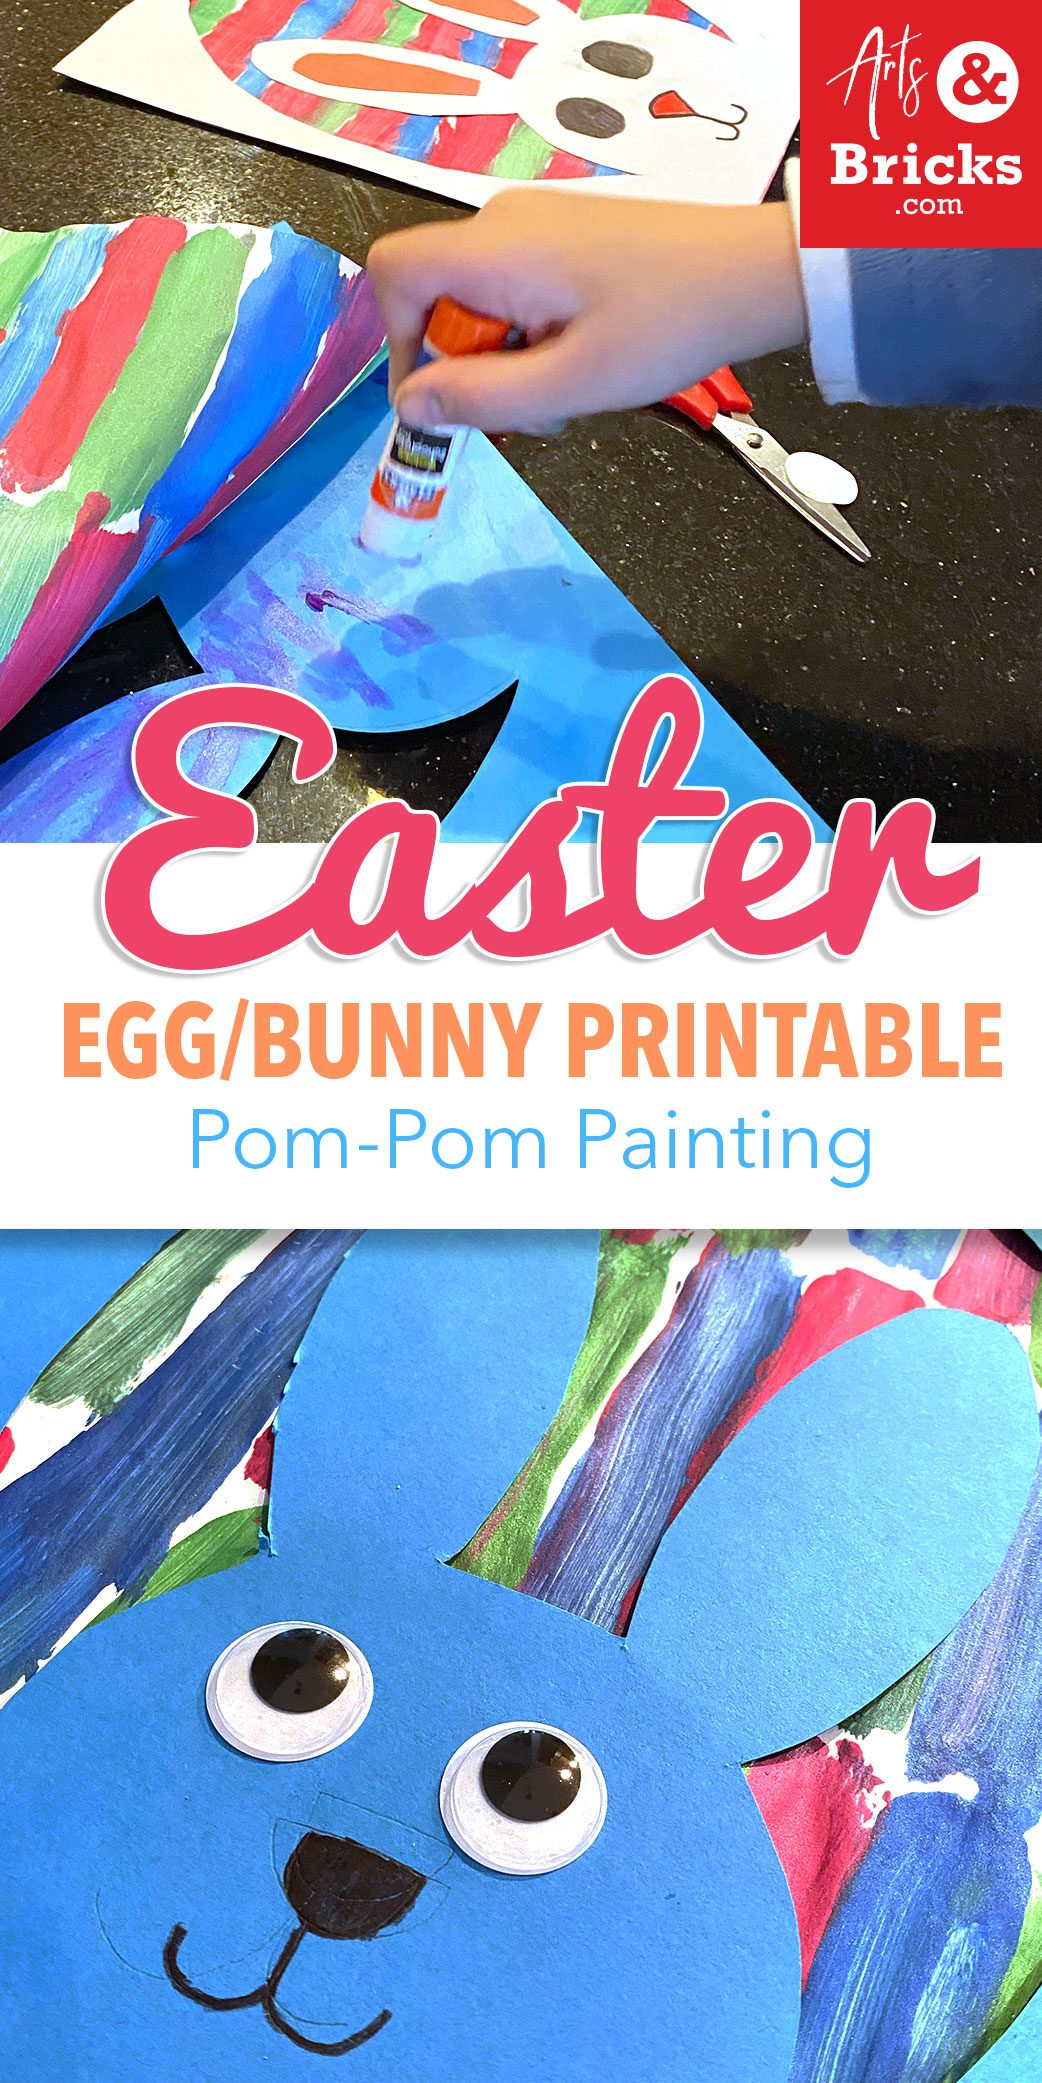 Easter Egg/Bunny Printable with Pom-Pom Painting